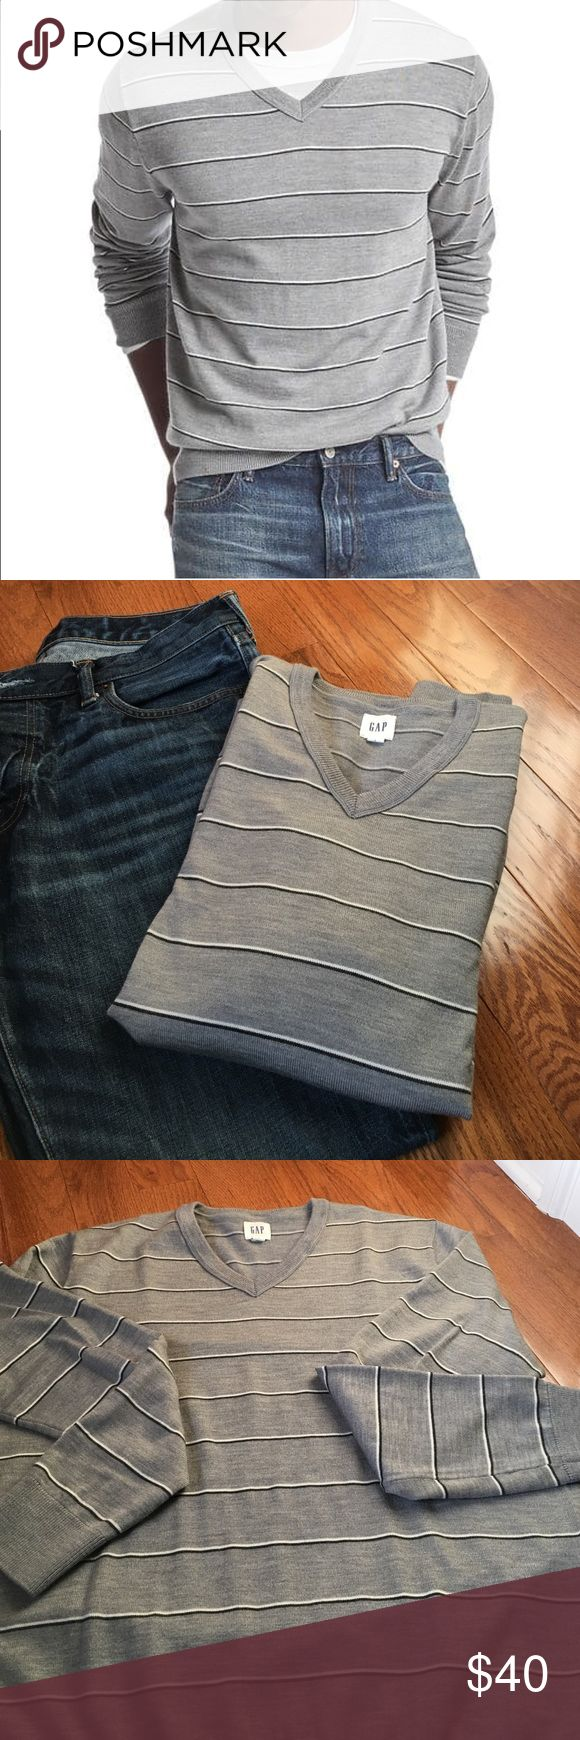 Men's Gap V neck long slv striped merino sweater Men's sized large V neck grey merino blend sweater with thin black and white stripe long sleeves.  This is a gap sweater from the current season.  Sells for 59.95.  New without tags GAP Sweaters V-Neck